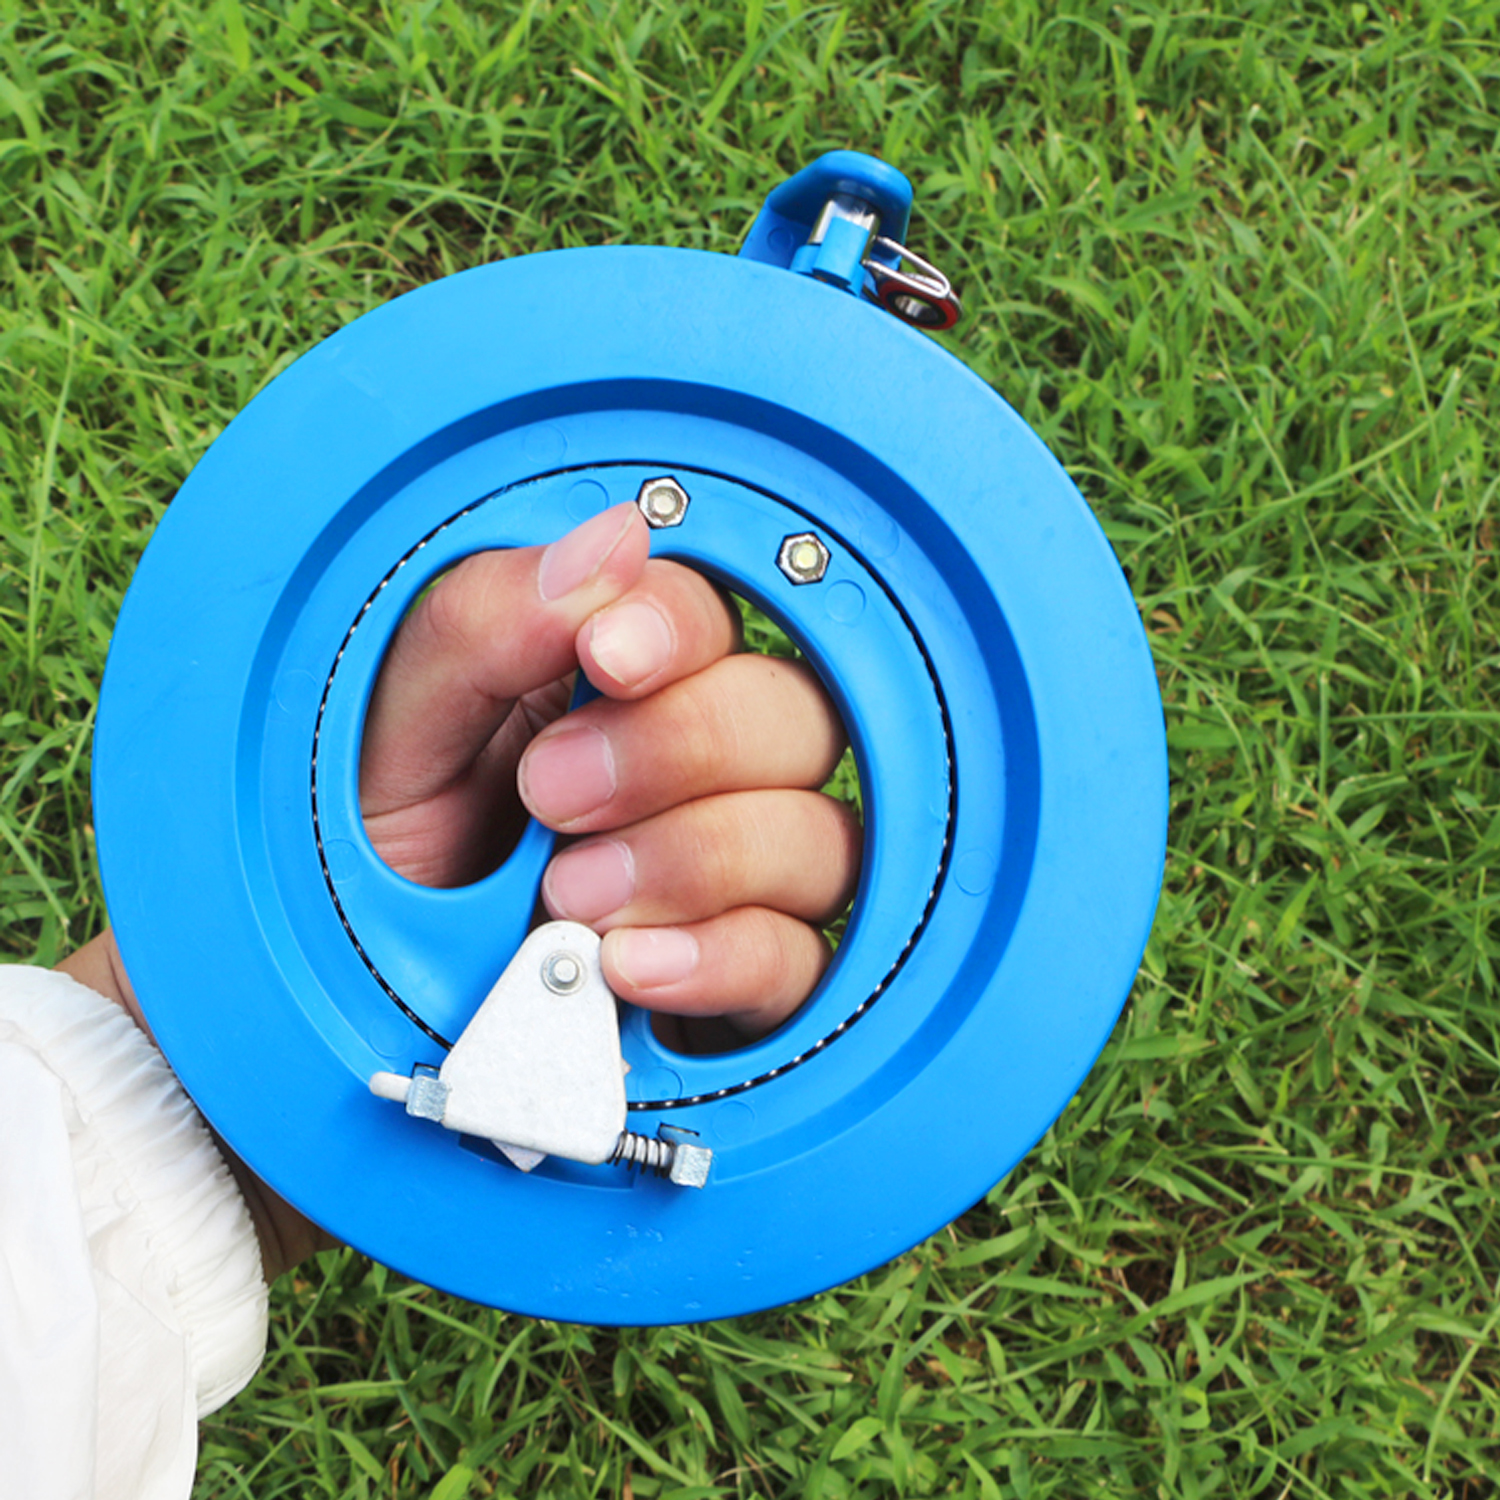 16cm Professional Plastic Round Handle Kite Line Winder Winding Reel Grip Wheel with 150m Flying Line String Kite Flying Tools image